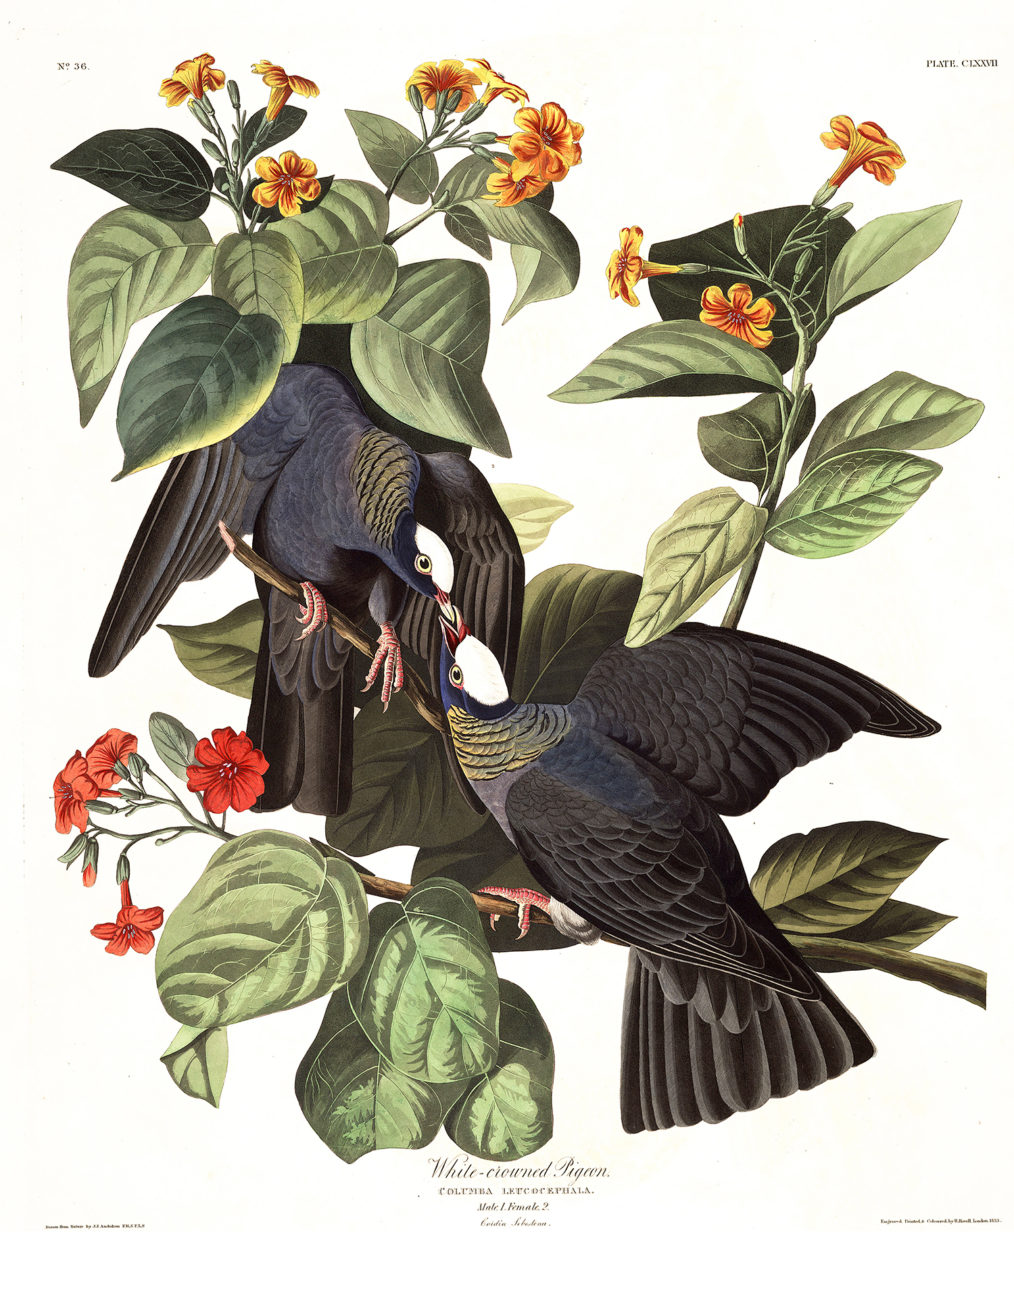 Plate 177 - White Crowned Pigeon